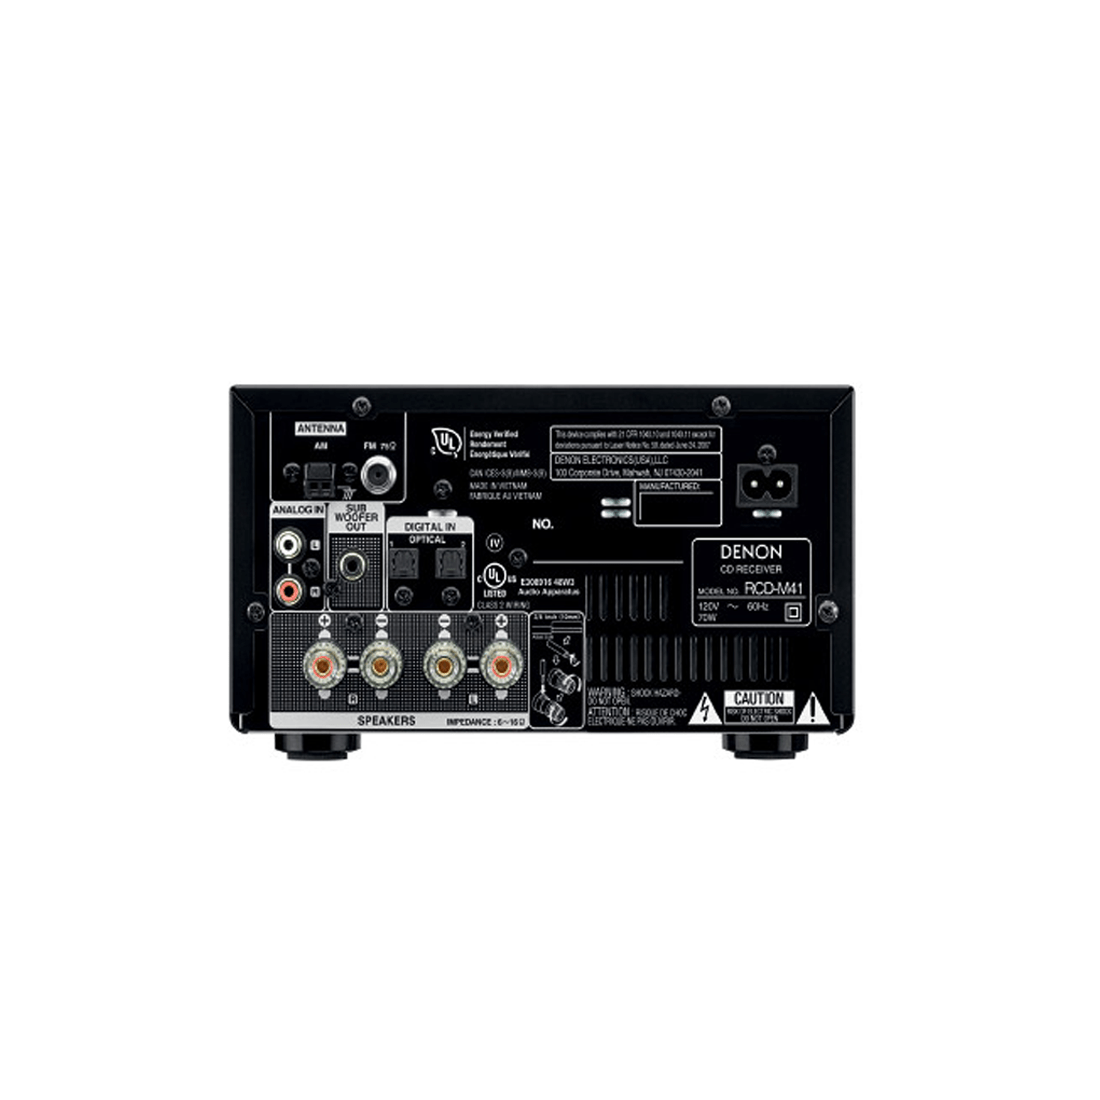 Car Alarm Security Installation together with 1999 Chevy Silverado Power Steering System furthermore Directed Electronics Valet 561t Wiring Diagrams furthermore 198 furthermore Showthread. on viper remote keyless entry system